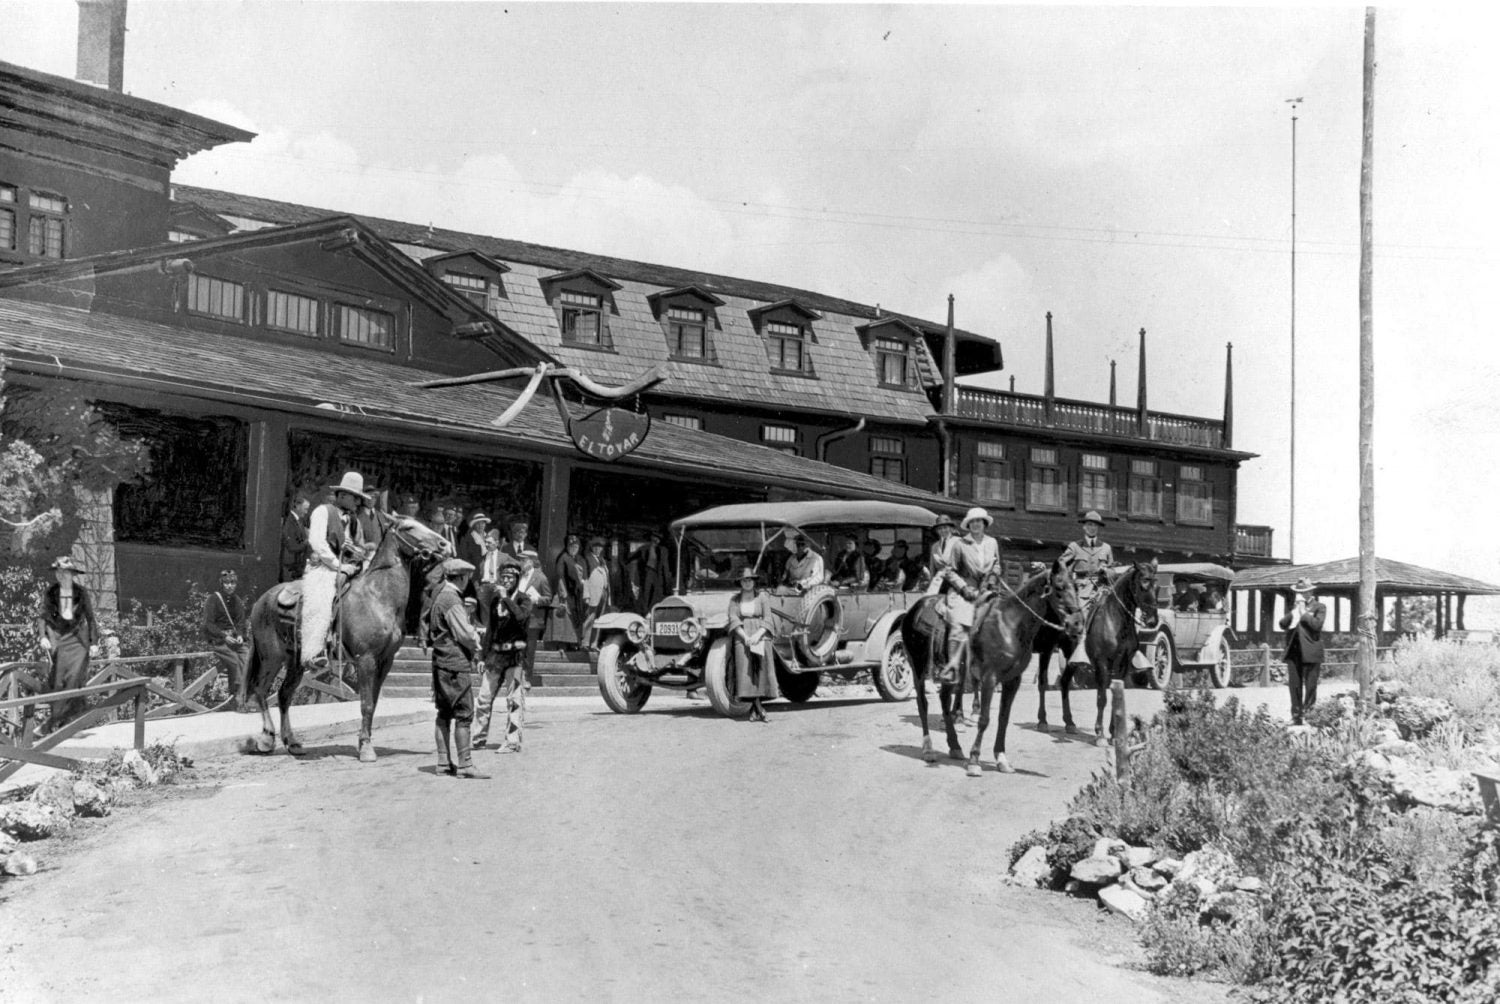 black and white image of people horse and cars in front of el tovar lodge in 1922